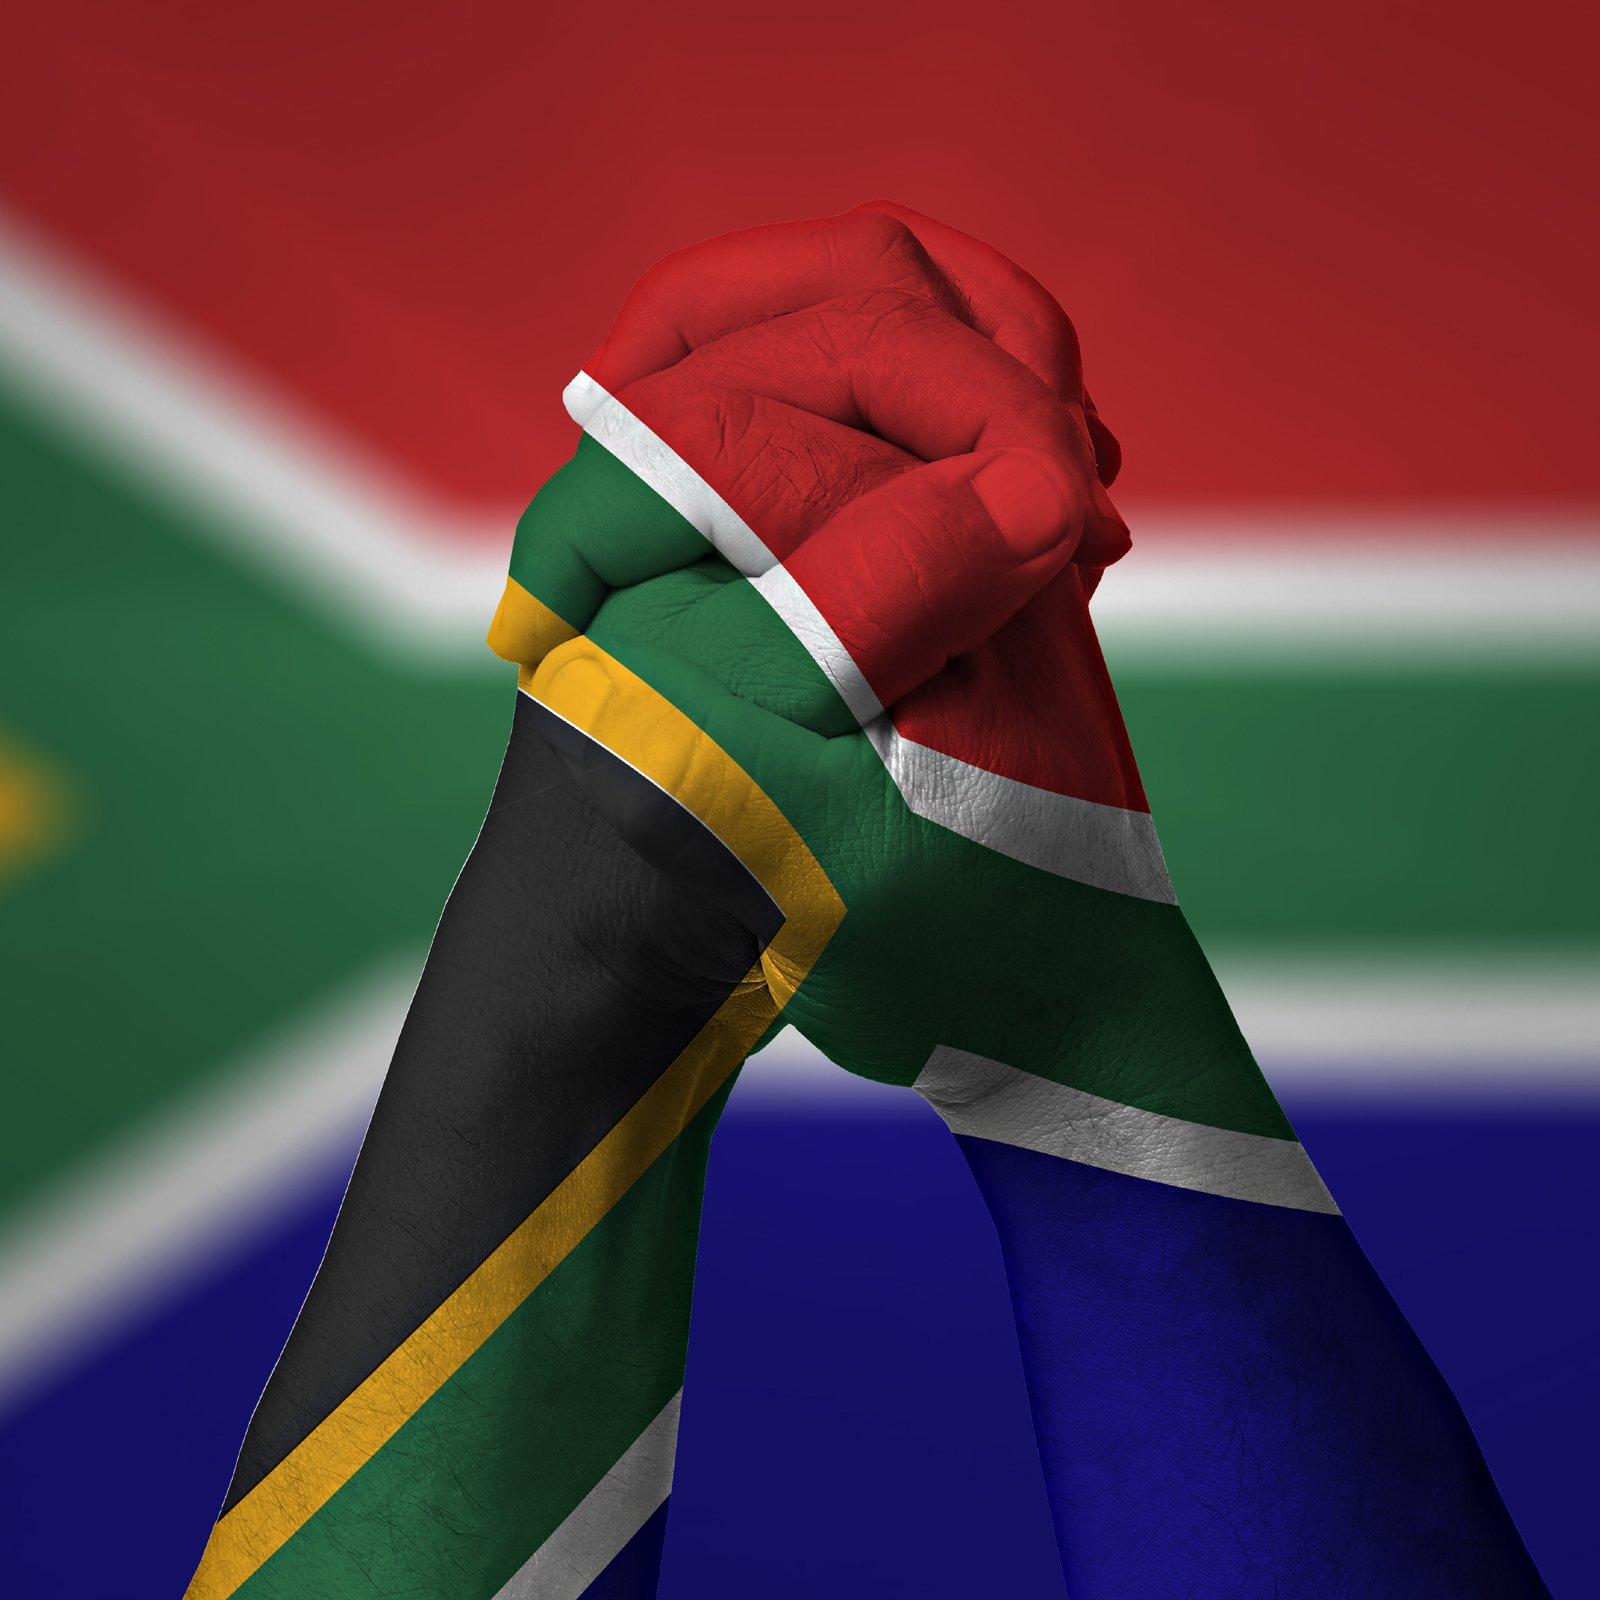 Crypto Self-Regulation Deemed Likely in South Africa